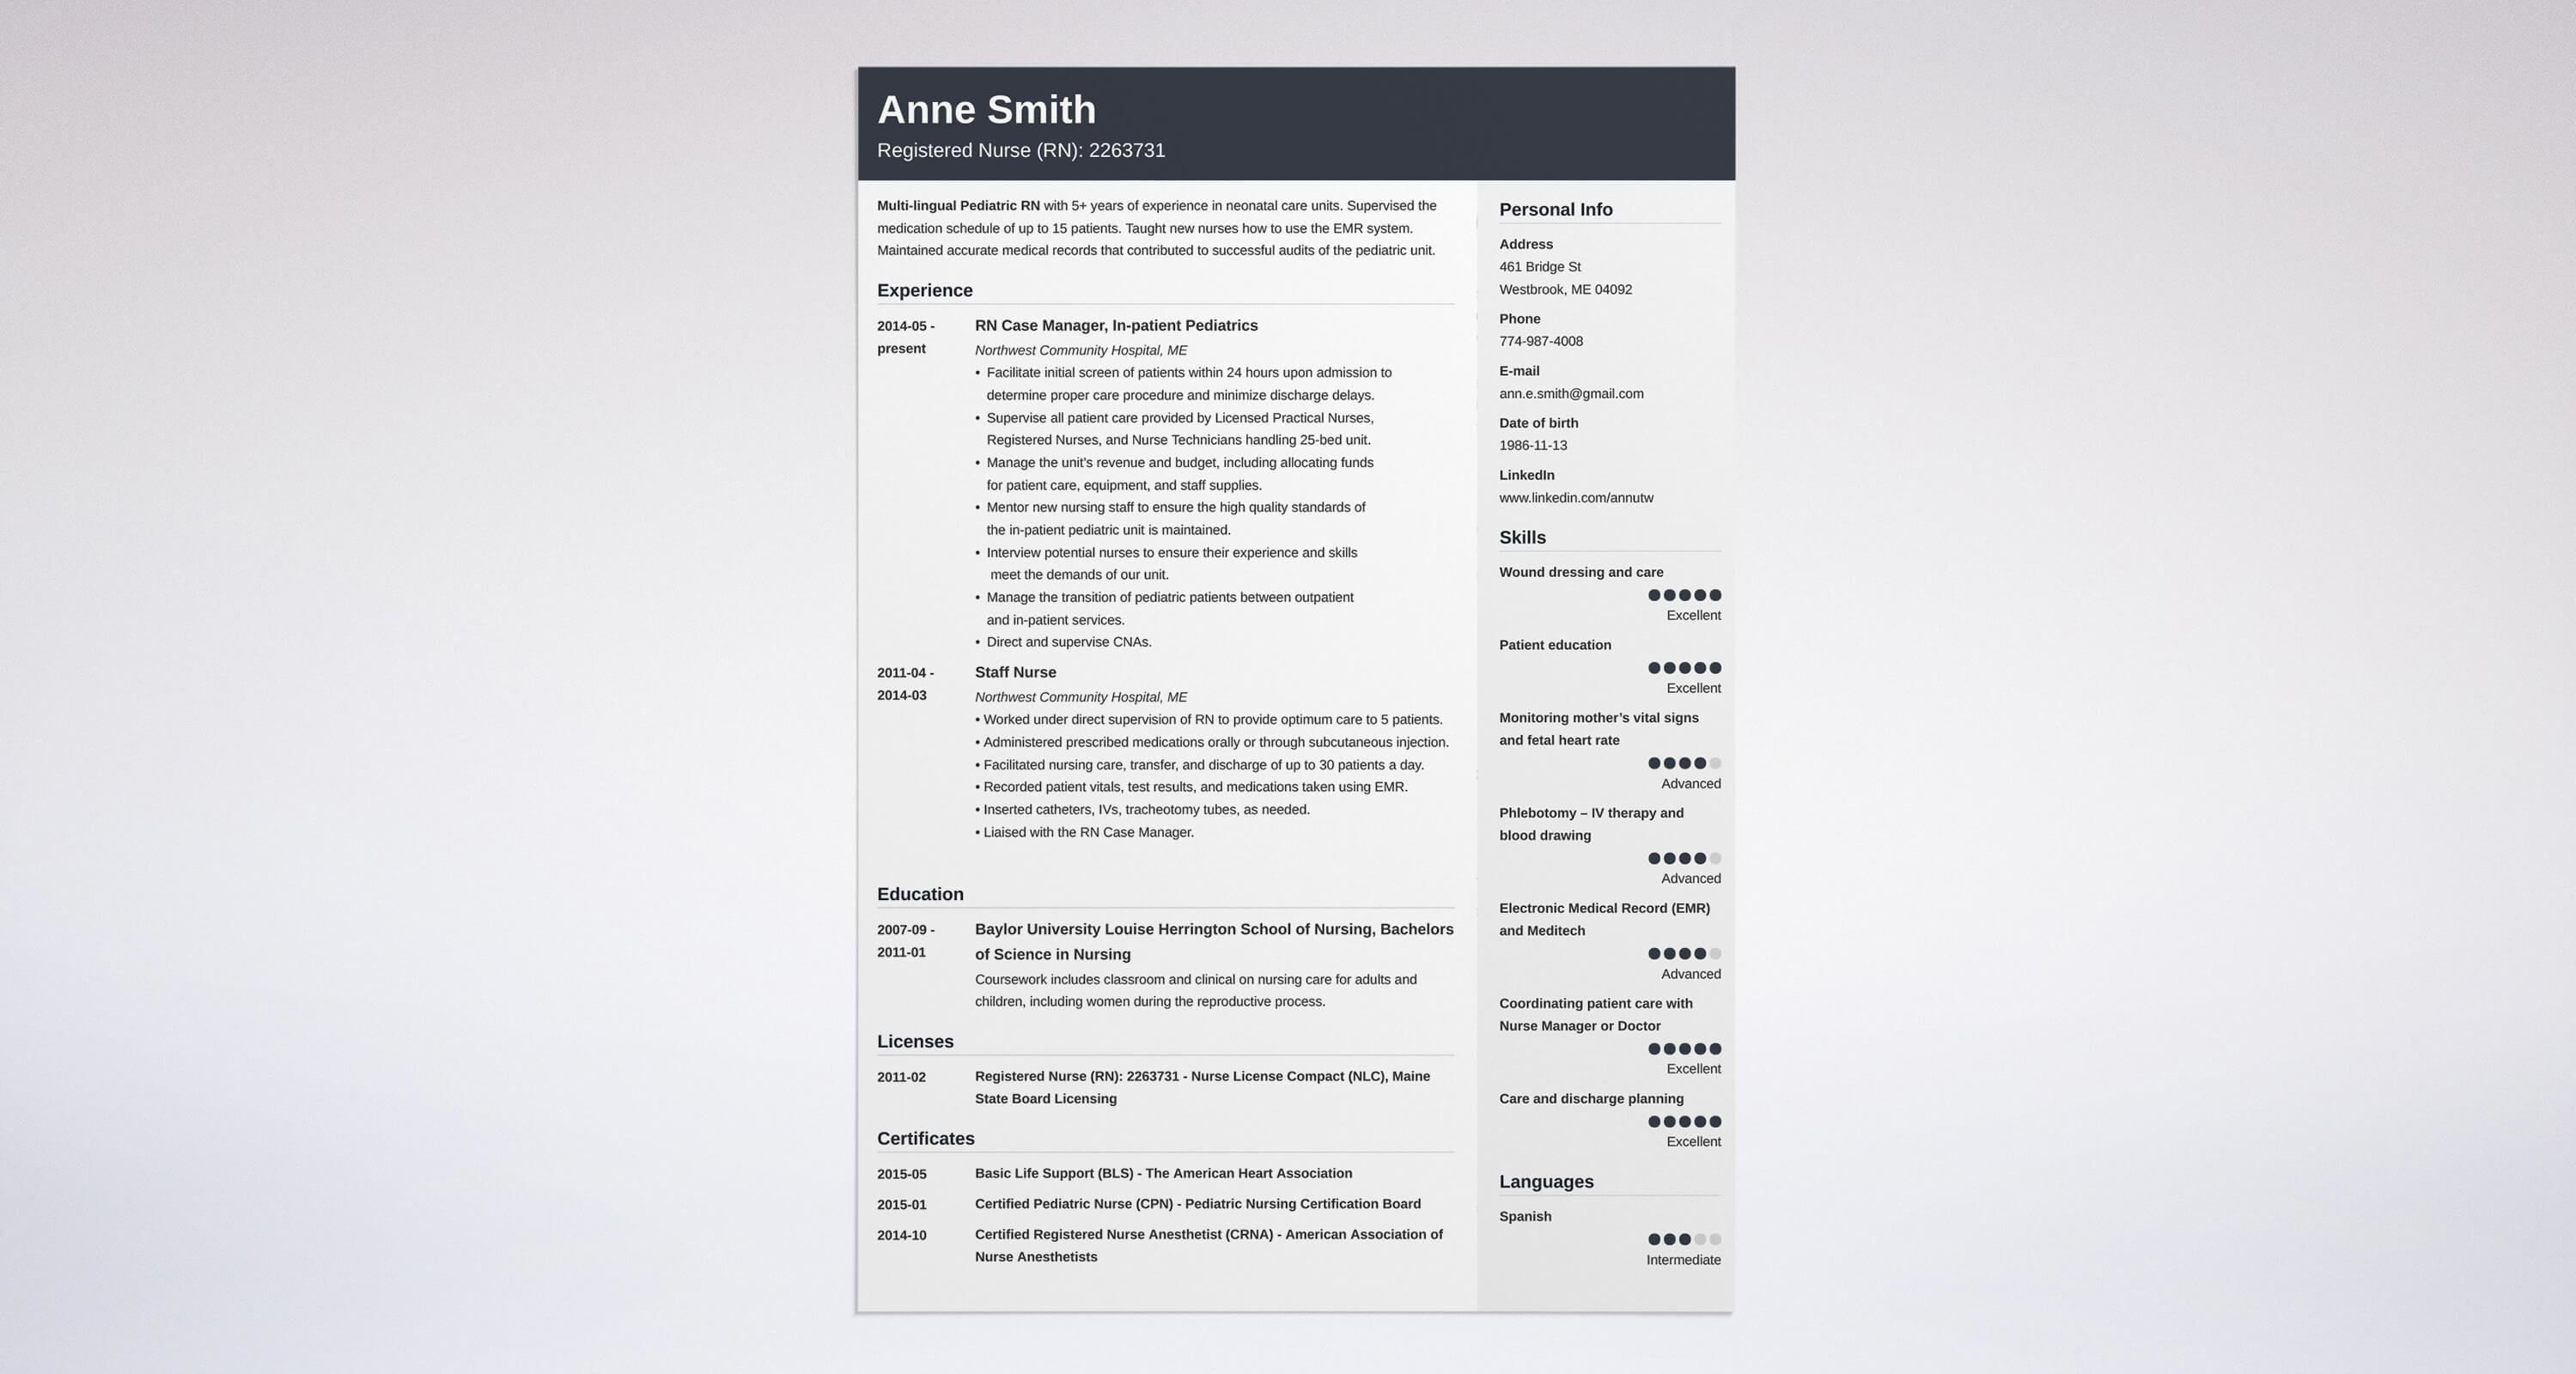 how to format a professional nursing resume - Professional Nursing Resume Template